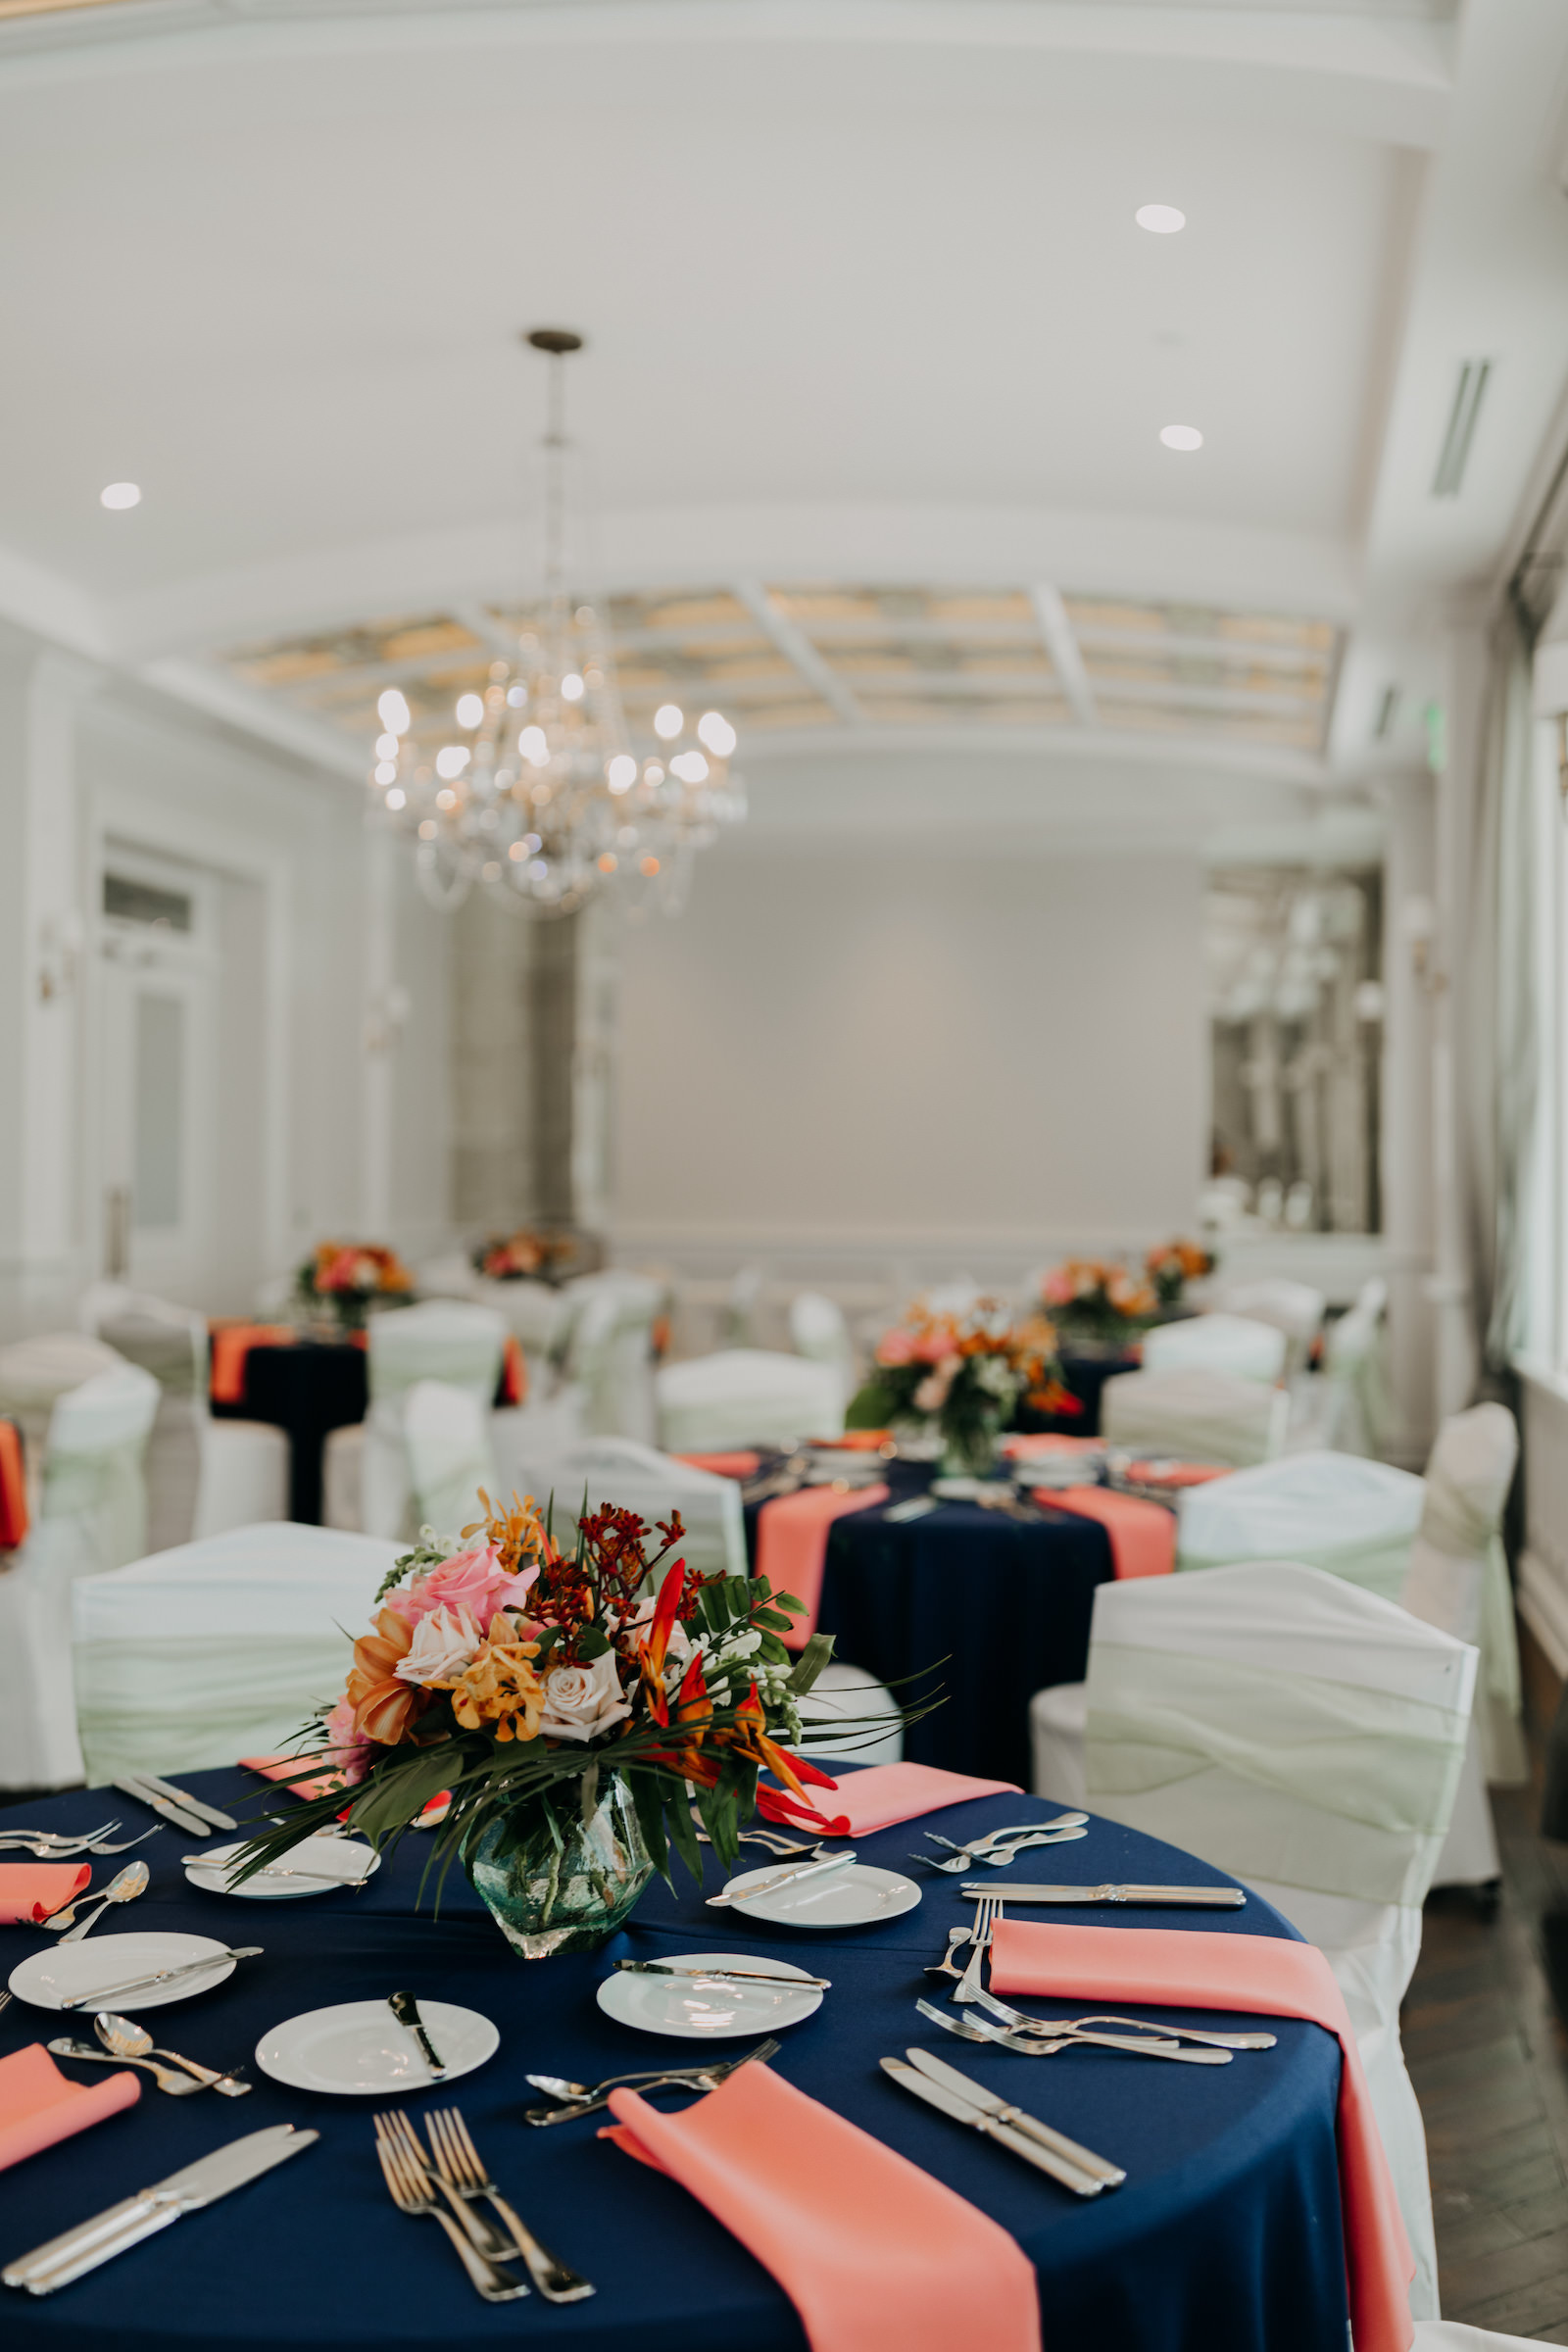 Indoor Clearwater Wedding Reception At Historic Venue Hotel Navy Blue Reception Table With Coral Peach Pink Napkins And Tropical Floral Arrangement Centerpieces Marry Me Tampa Bay Local Real Wedding